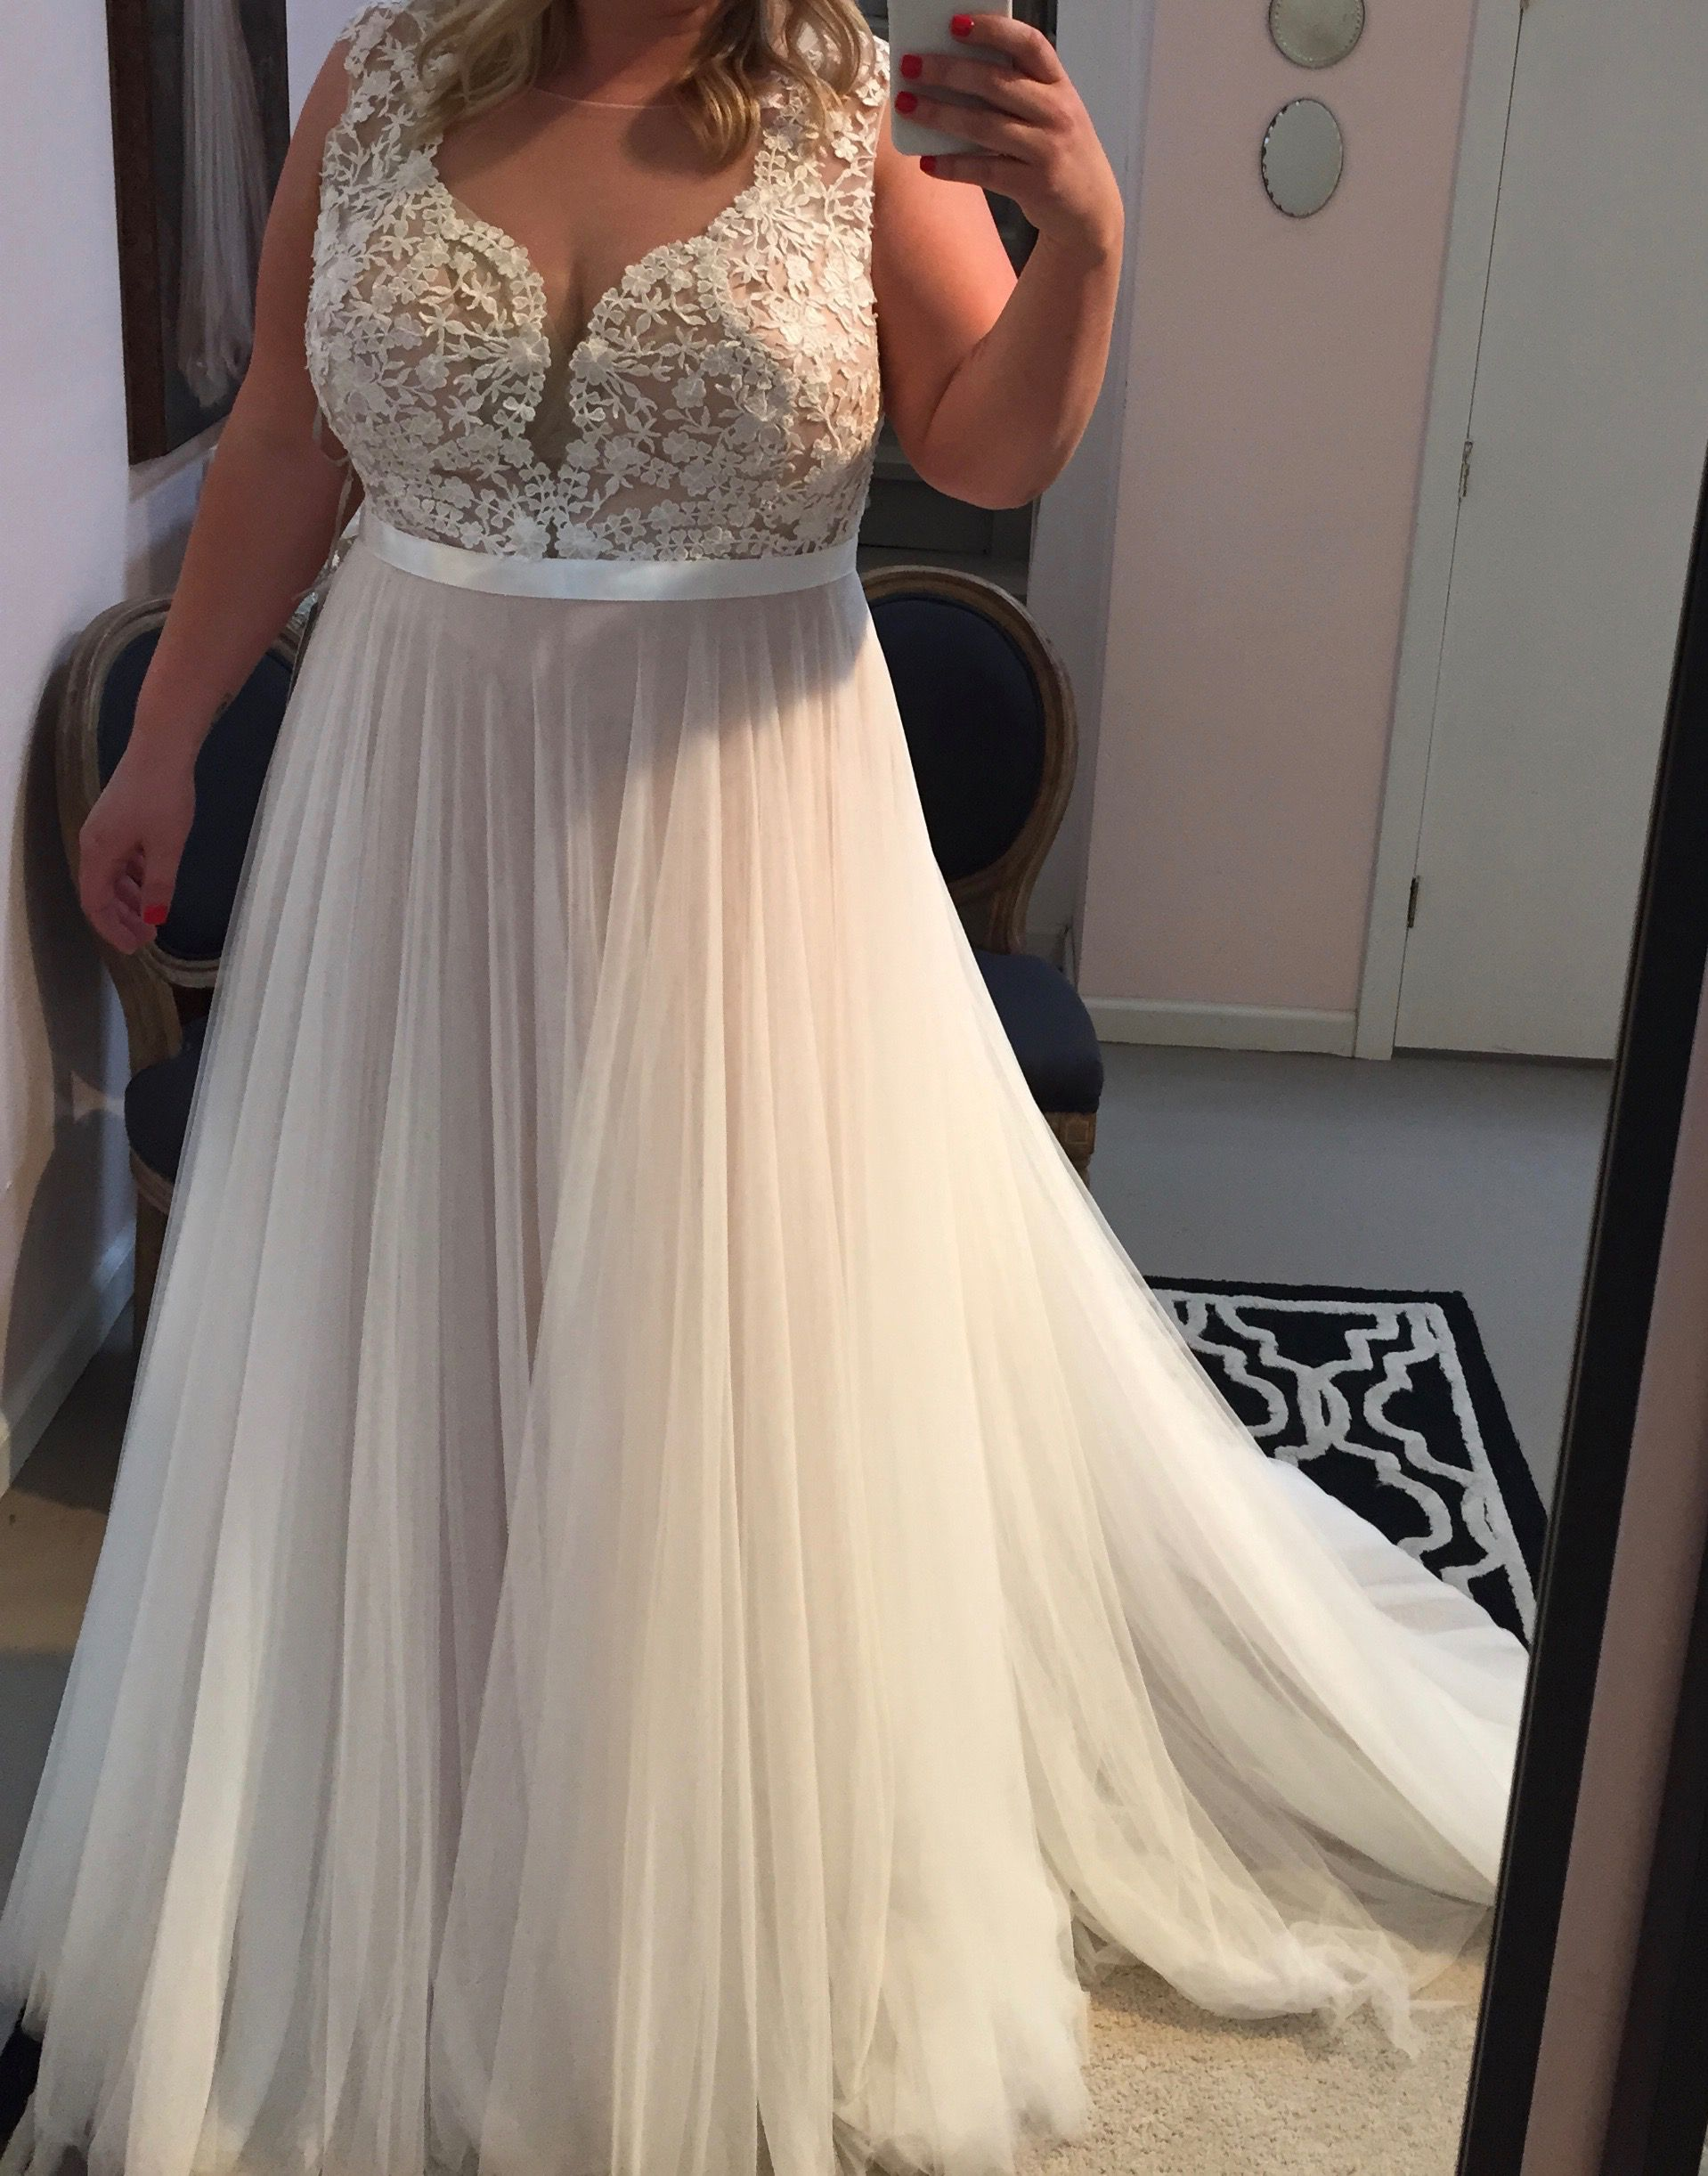 Plus size wedding dress beach wedding dress wedding for Beach wedding dresses for plus size